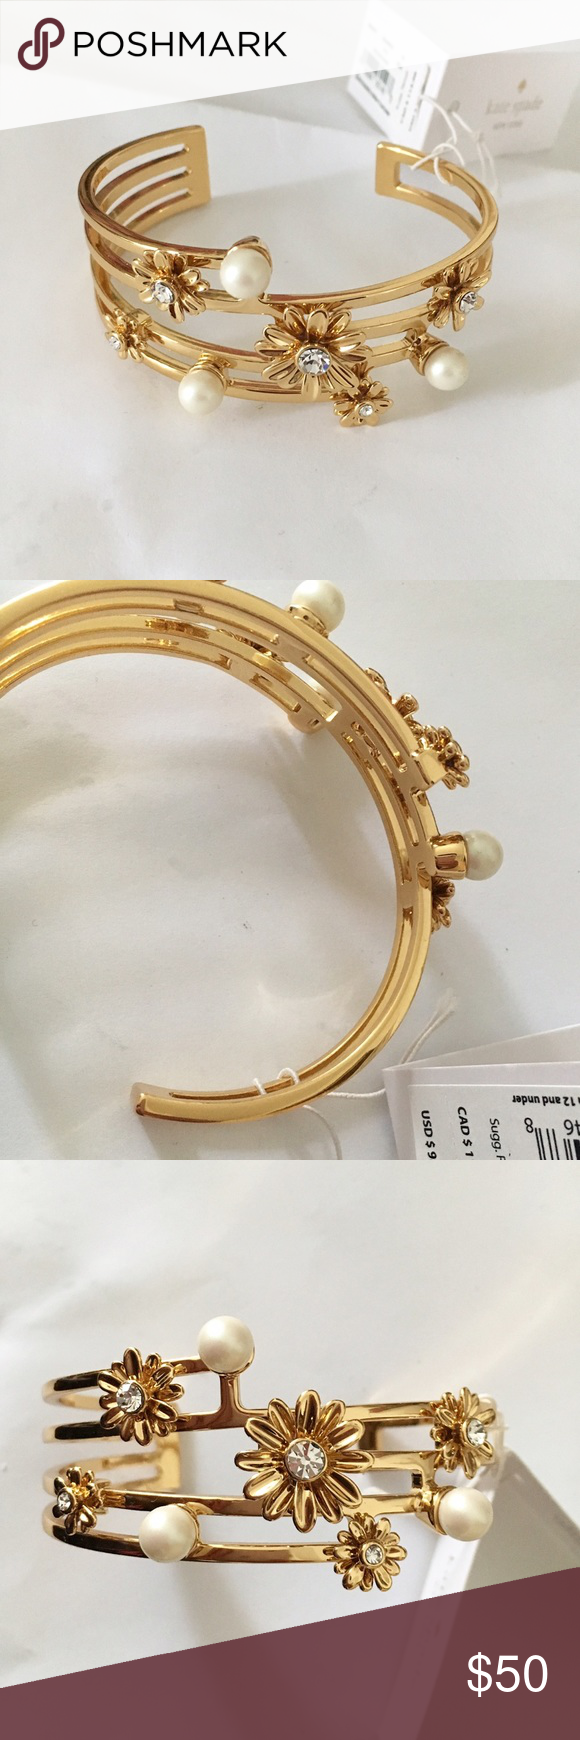 Kate Spade New York Pearl Daisy Cuff This gold cuff from Kate Spade has multiple rows with stacked daisies with gems inside as well as faux pearls. Comes with gift bag/box. kate spade Jewelry Bracelets